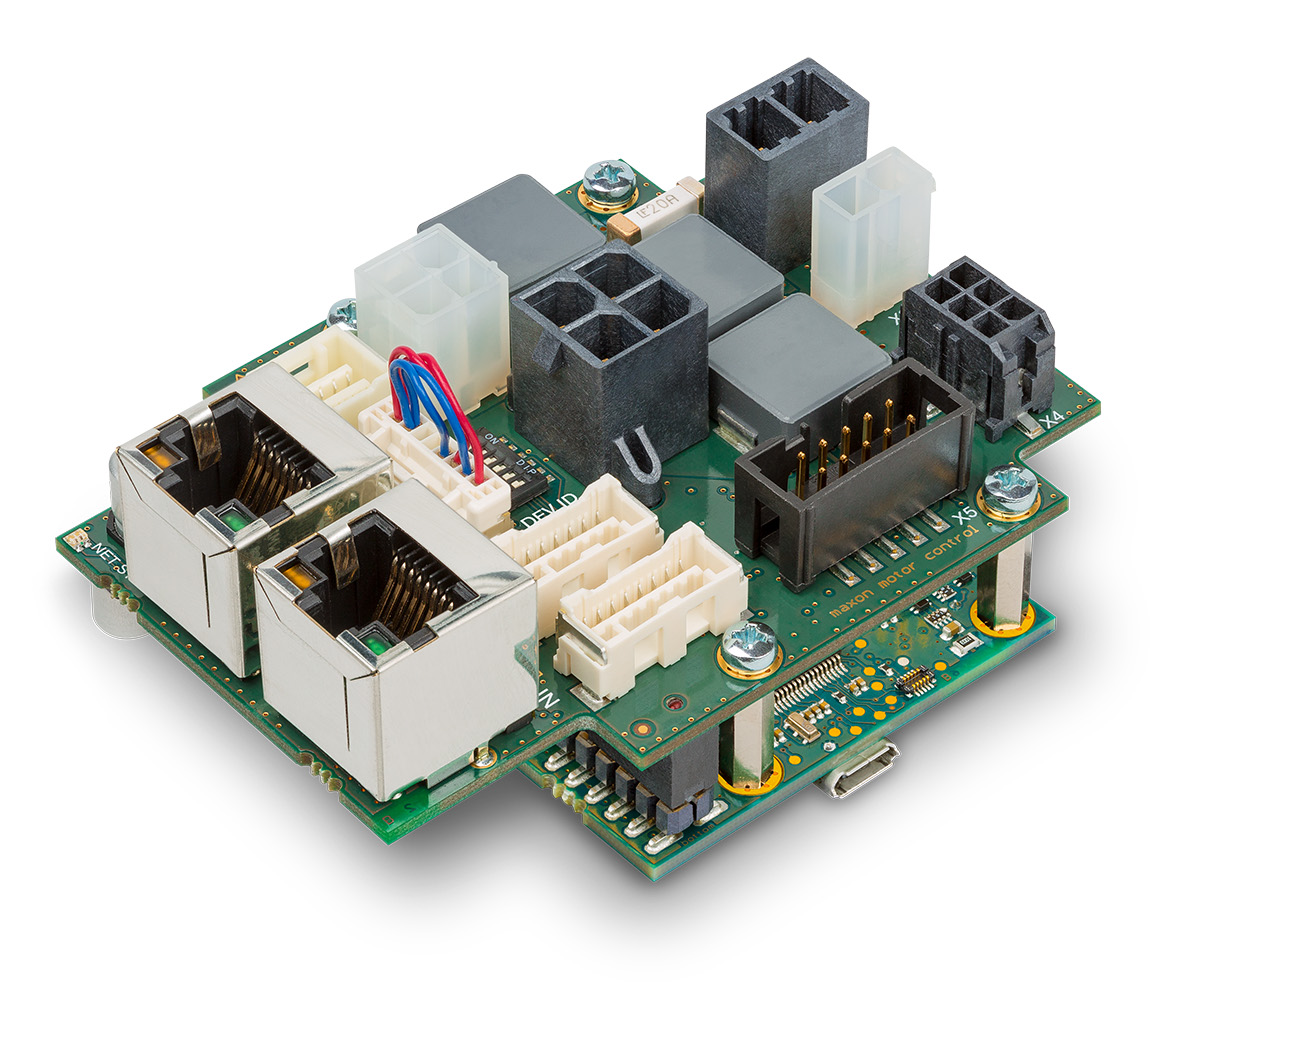 Maxon Motor Benelux Dutchhts Panel Heater Wiring Diagram The Epos4 Compact Positioning Controllers From Are Ready For Effortless Industrial Ethernet Connectivity